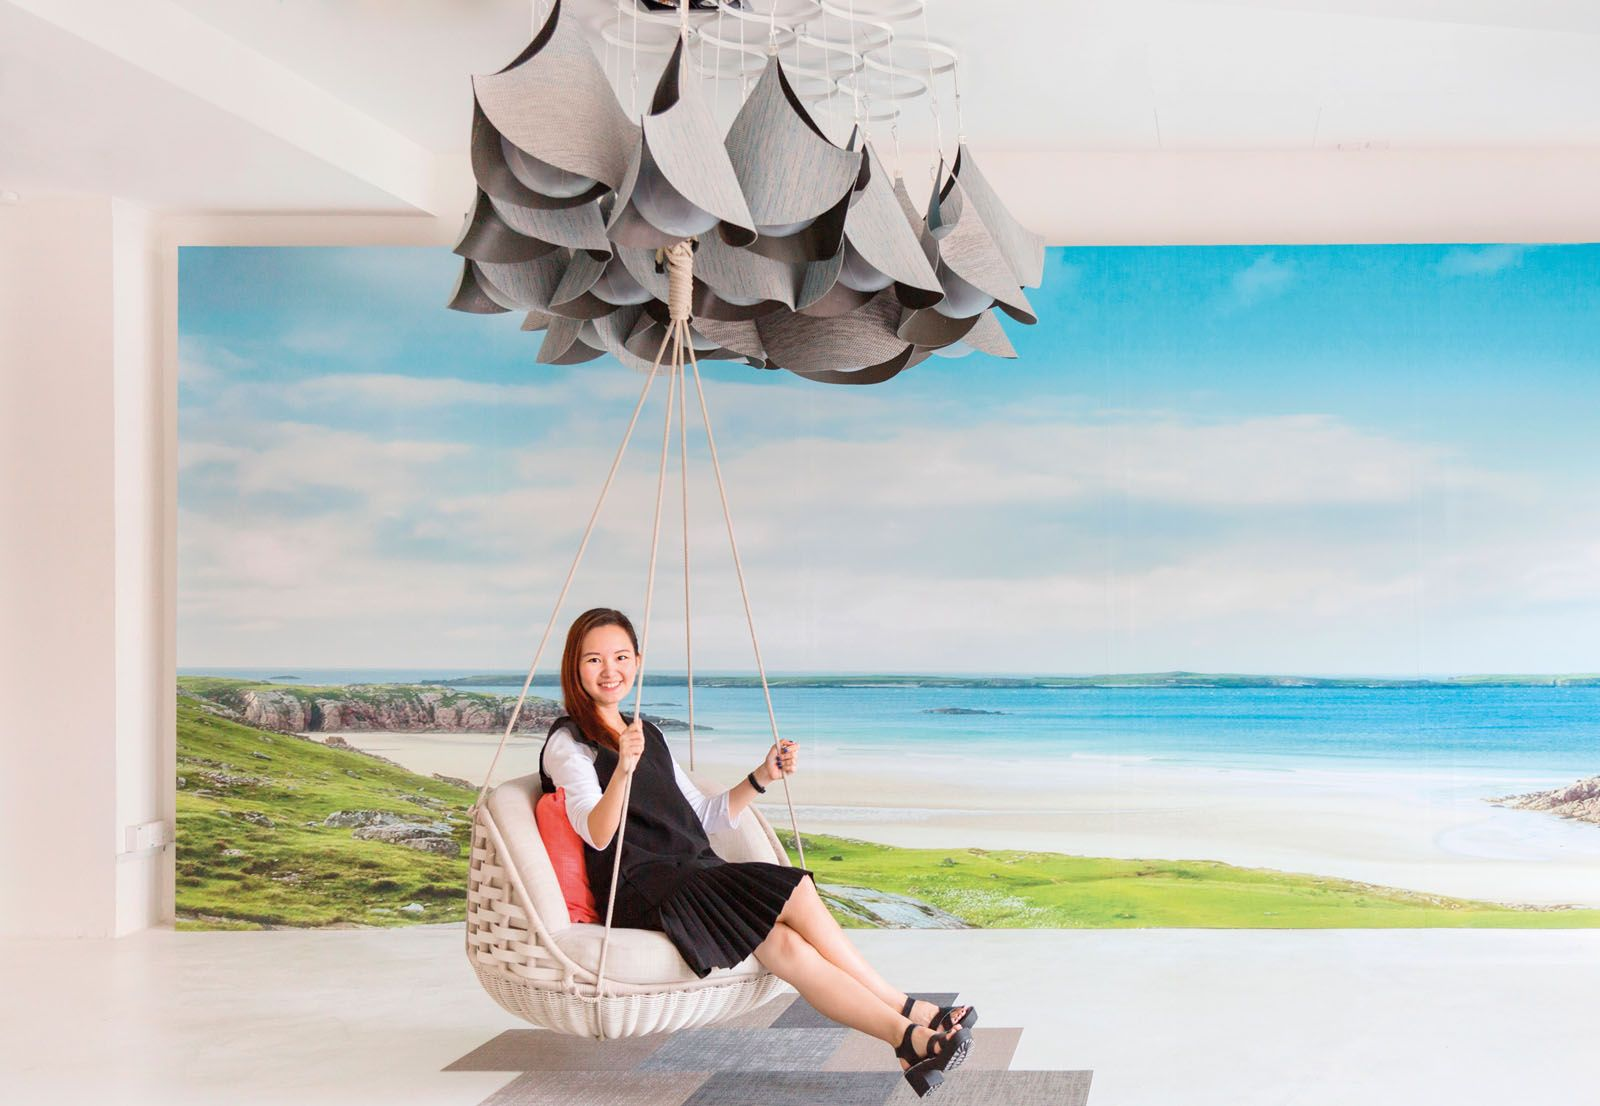 Fraction Design Studio founder and designer Celine Ng with Cloud 9, a collaboration with Bolon and Xtra. The installation is composed of cloud forms, painting a surreal experience of swinging high in the sky